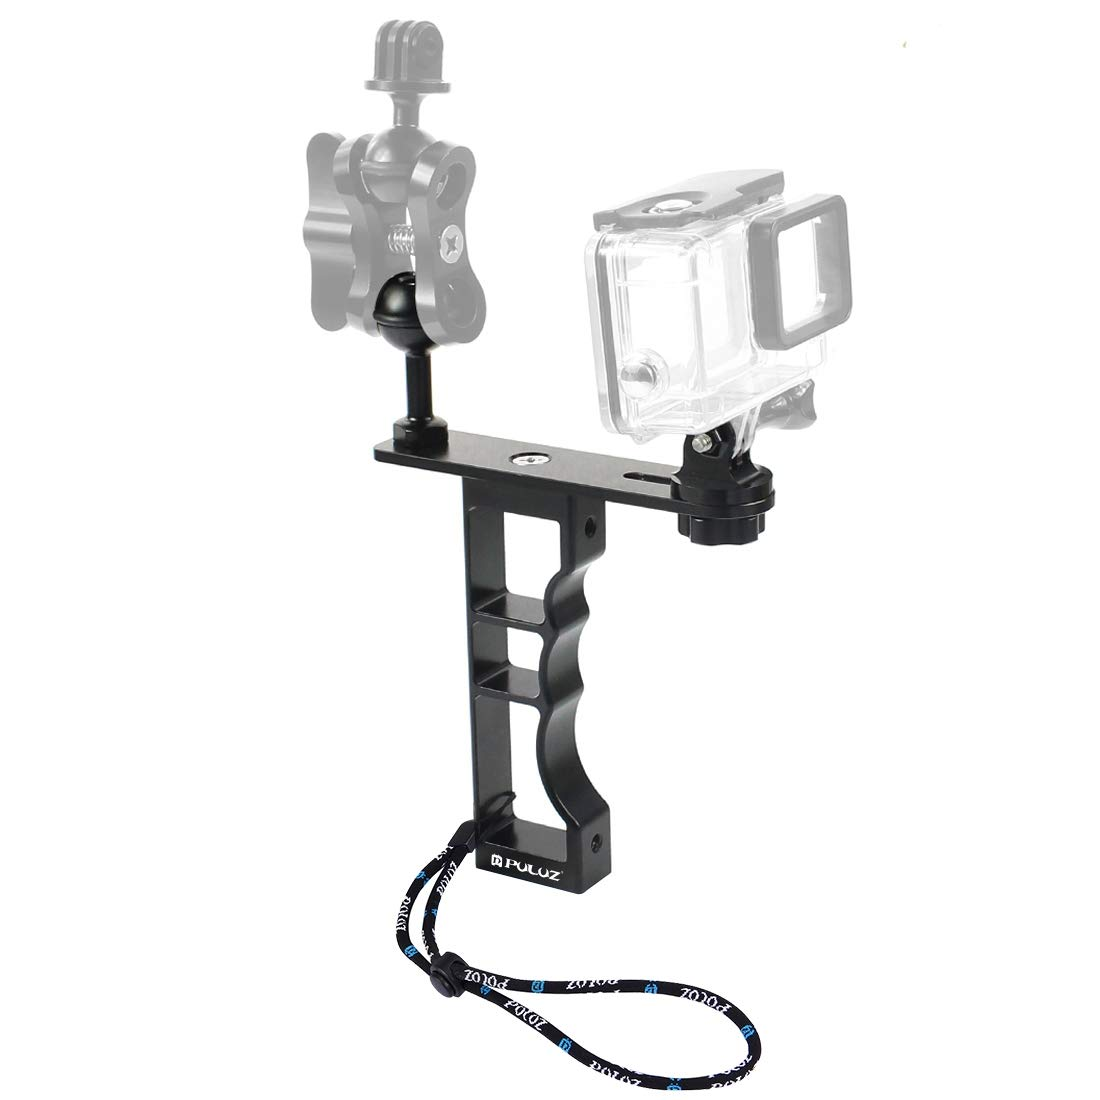 //3//2 //1 GoPro New Hero //HERO7 //6//5 //5 Session //4 Session //4//3 Xiaoyi and Other Action Cameras Durable Dual Handheld Diving Light Arm CNC Aluminum Mount with Lanyard for DJI New Action